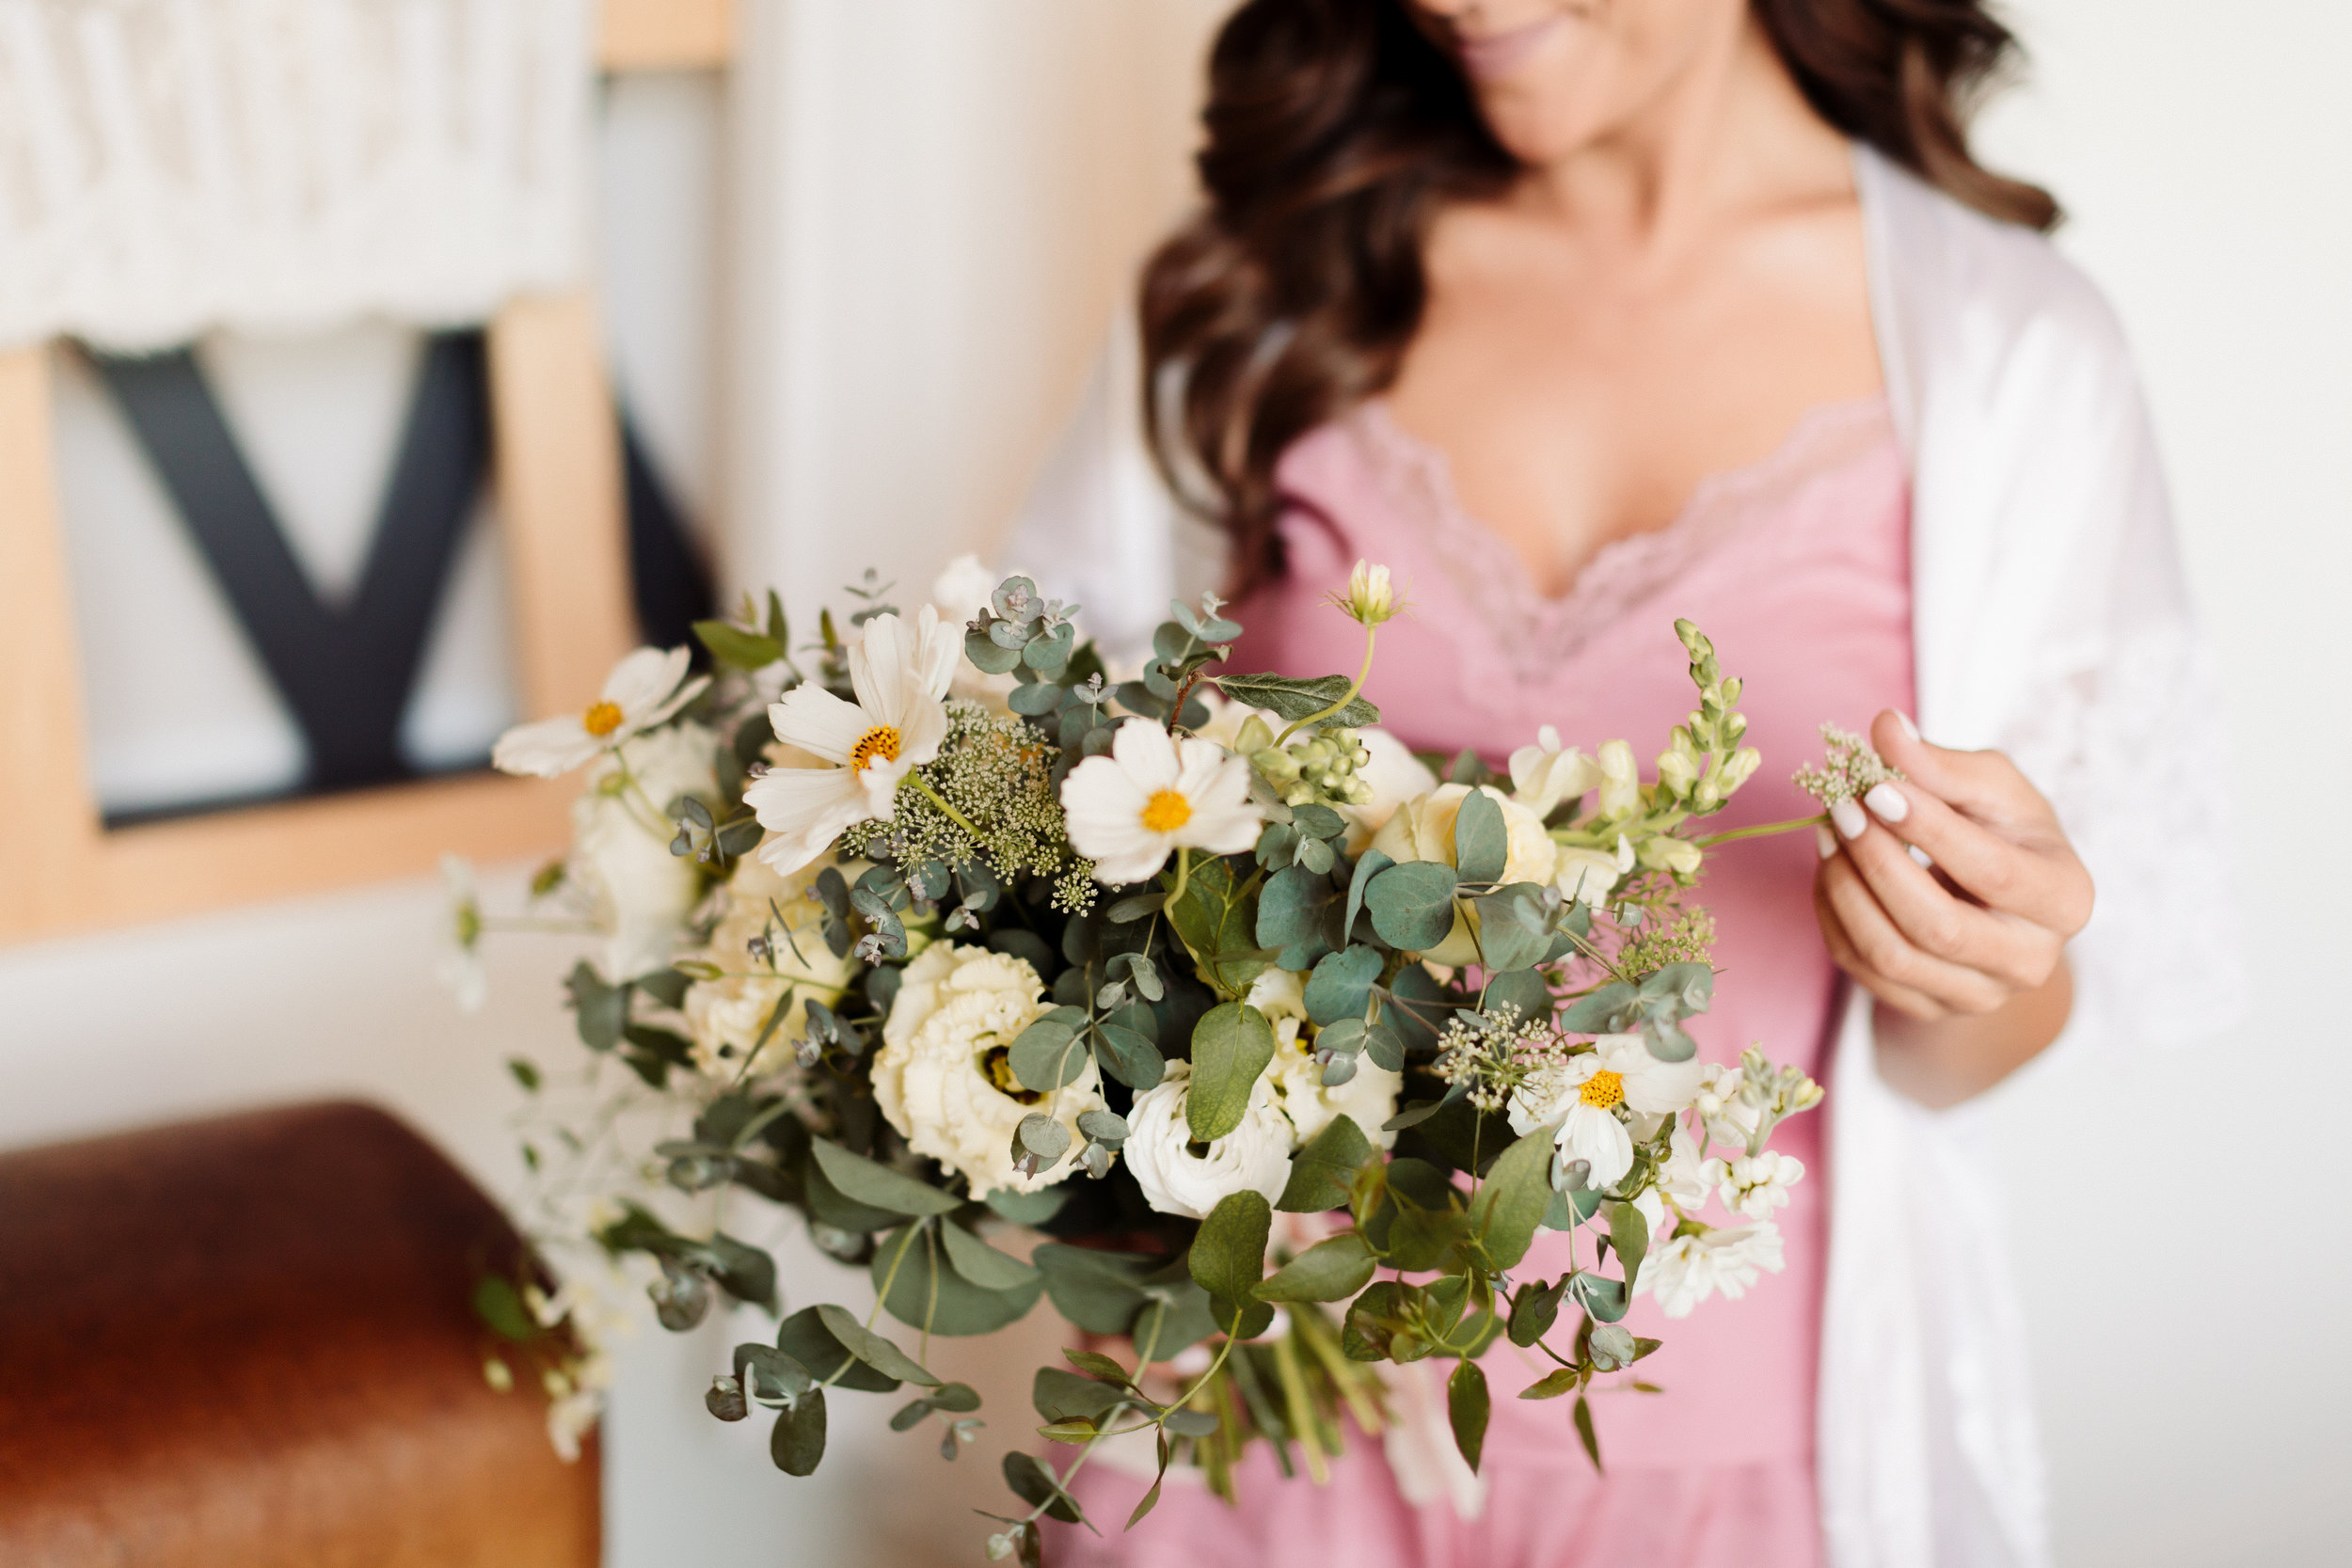 Delicate White Bridal Bouquet in August